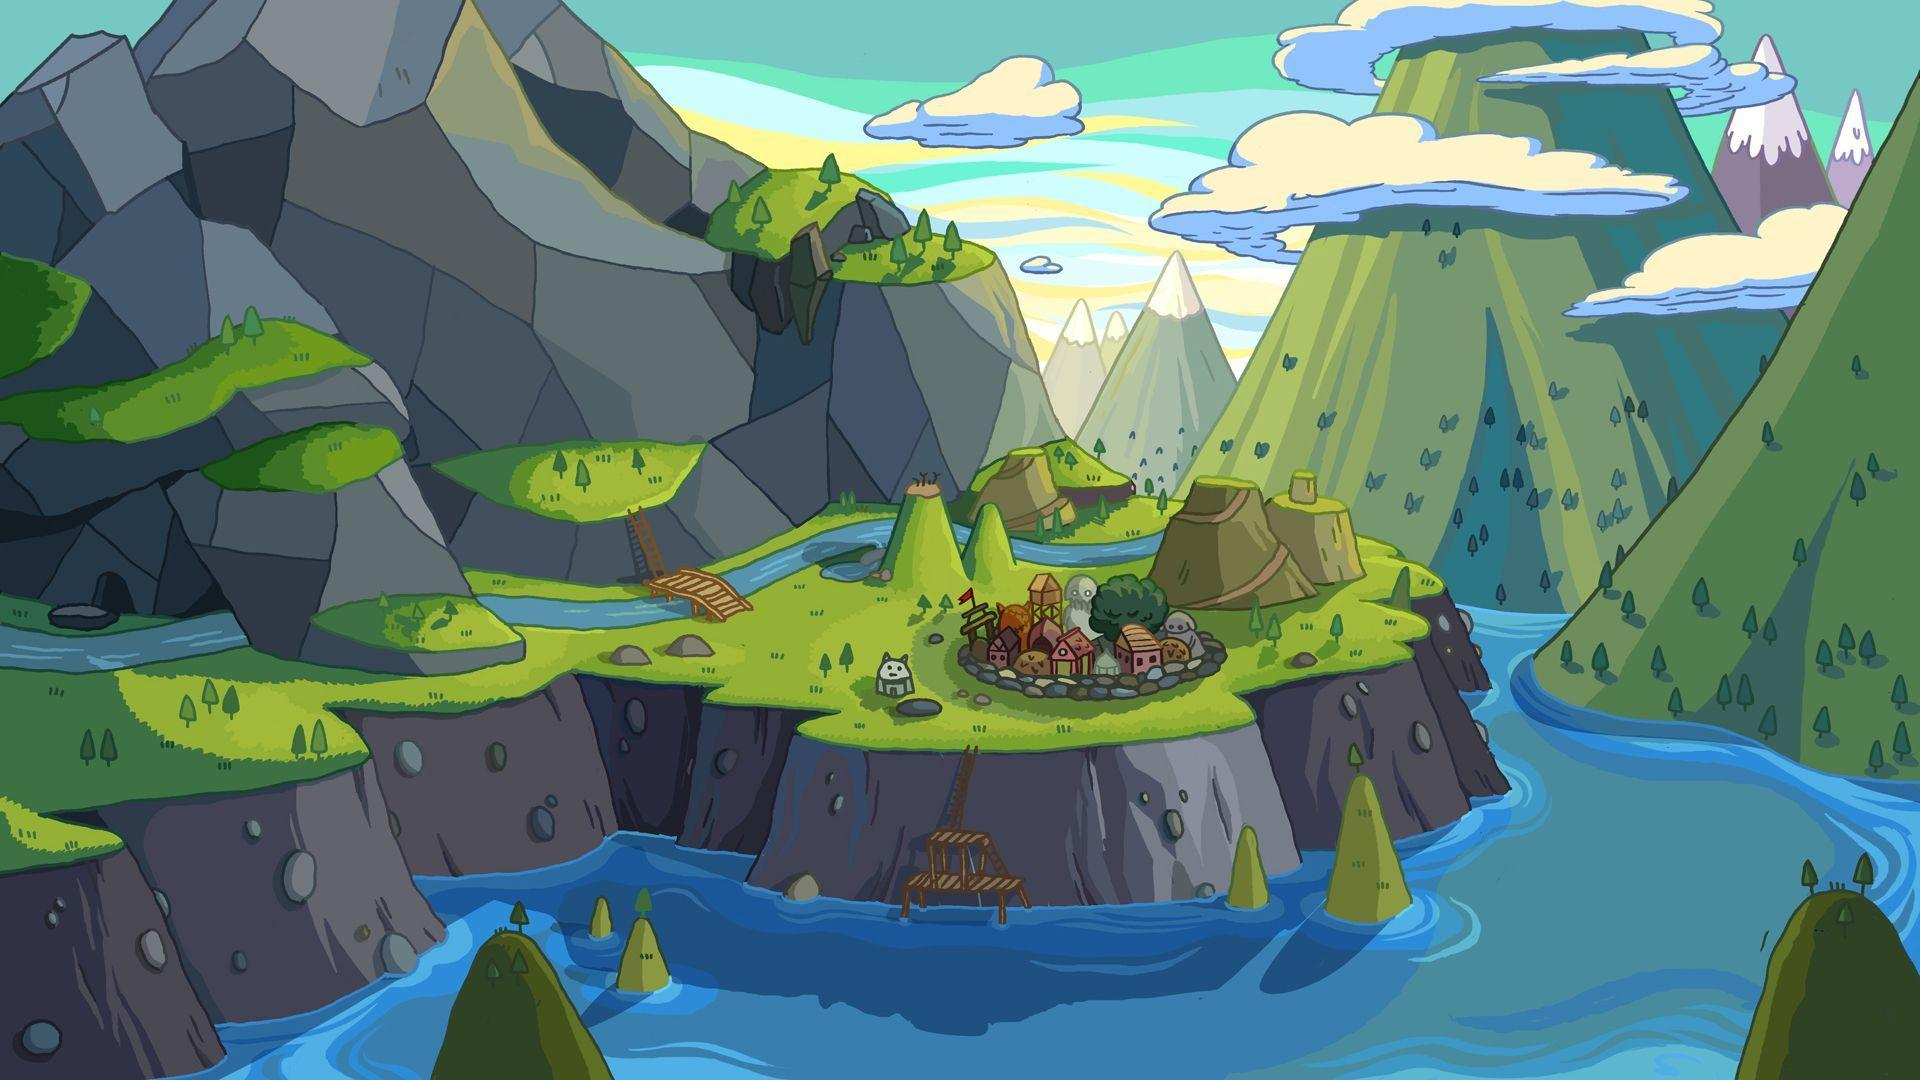 Adventure Time Wallpapers Hd Wallpaper Cave HD Wallpapers Download Free Images Wallpaper [1000image.com]